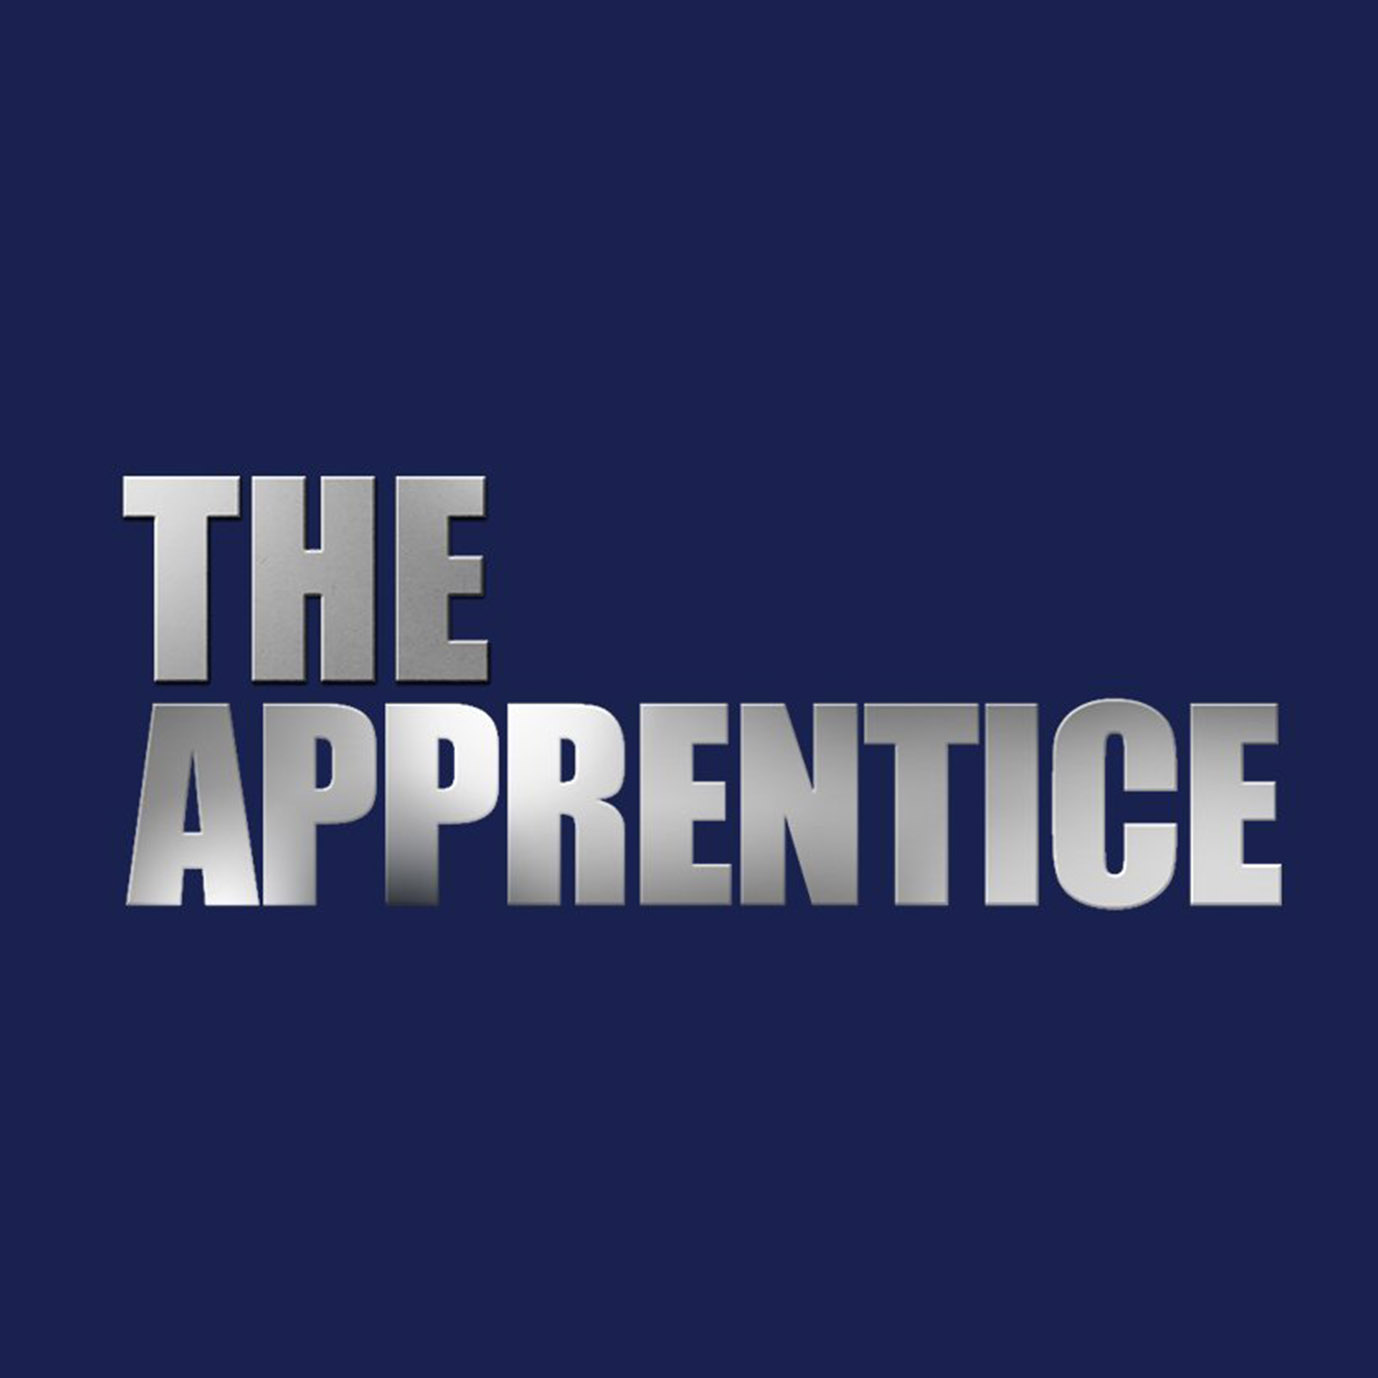 Richard Popple to appear with Alan Sugar - Richard is filming opposite Sir Alan Sugar to promote the new series of The Apprentice for BBC.